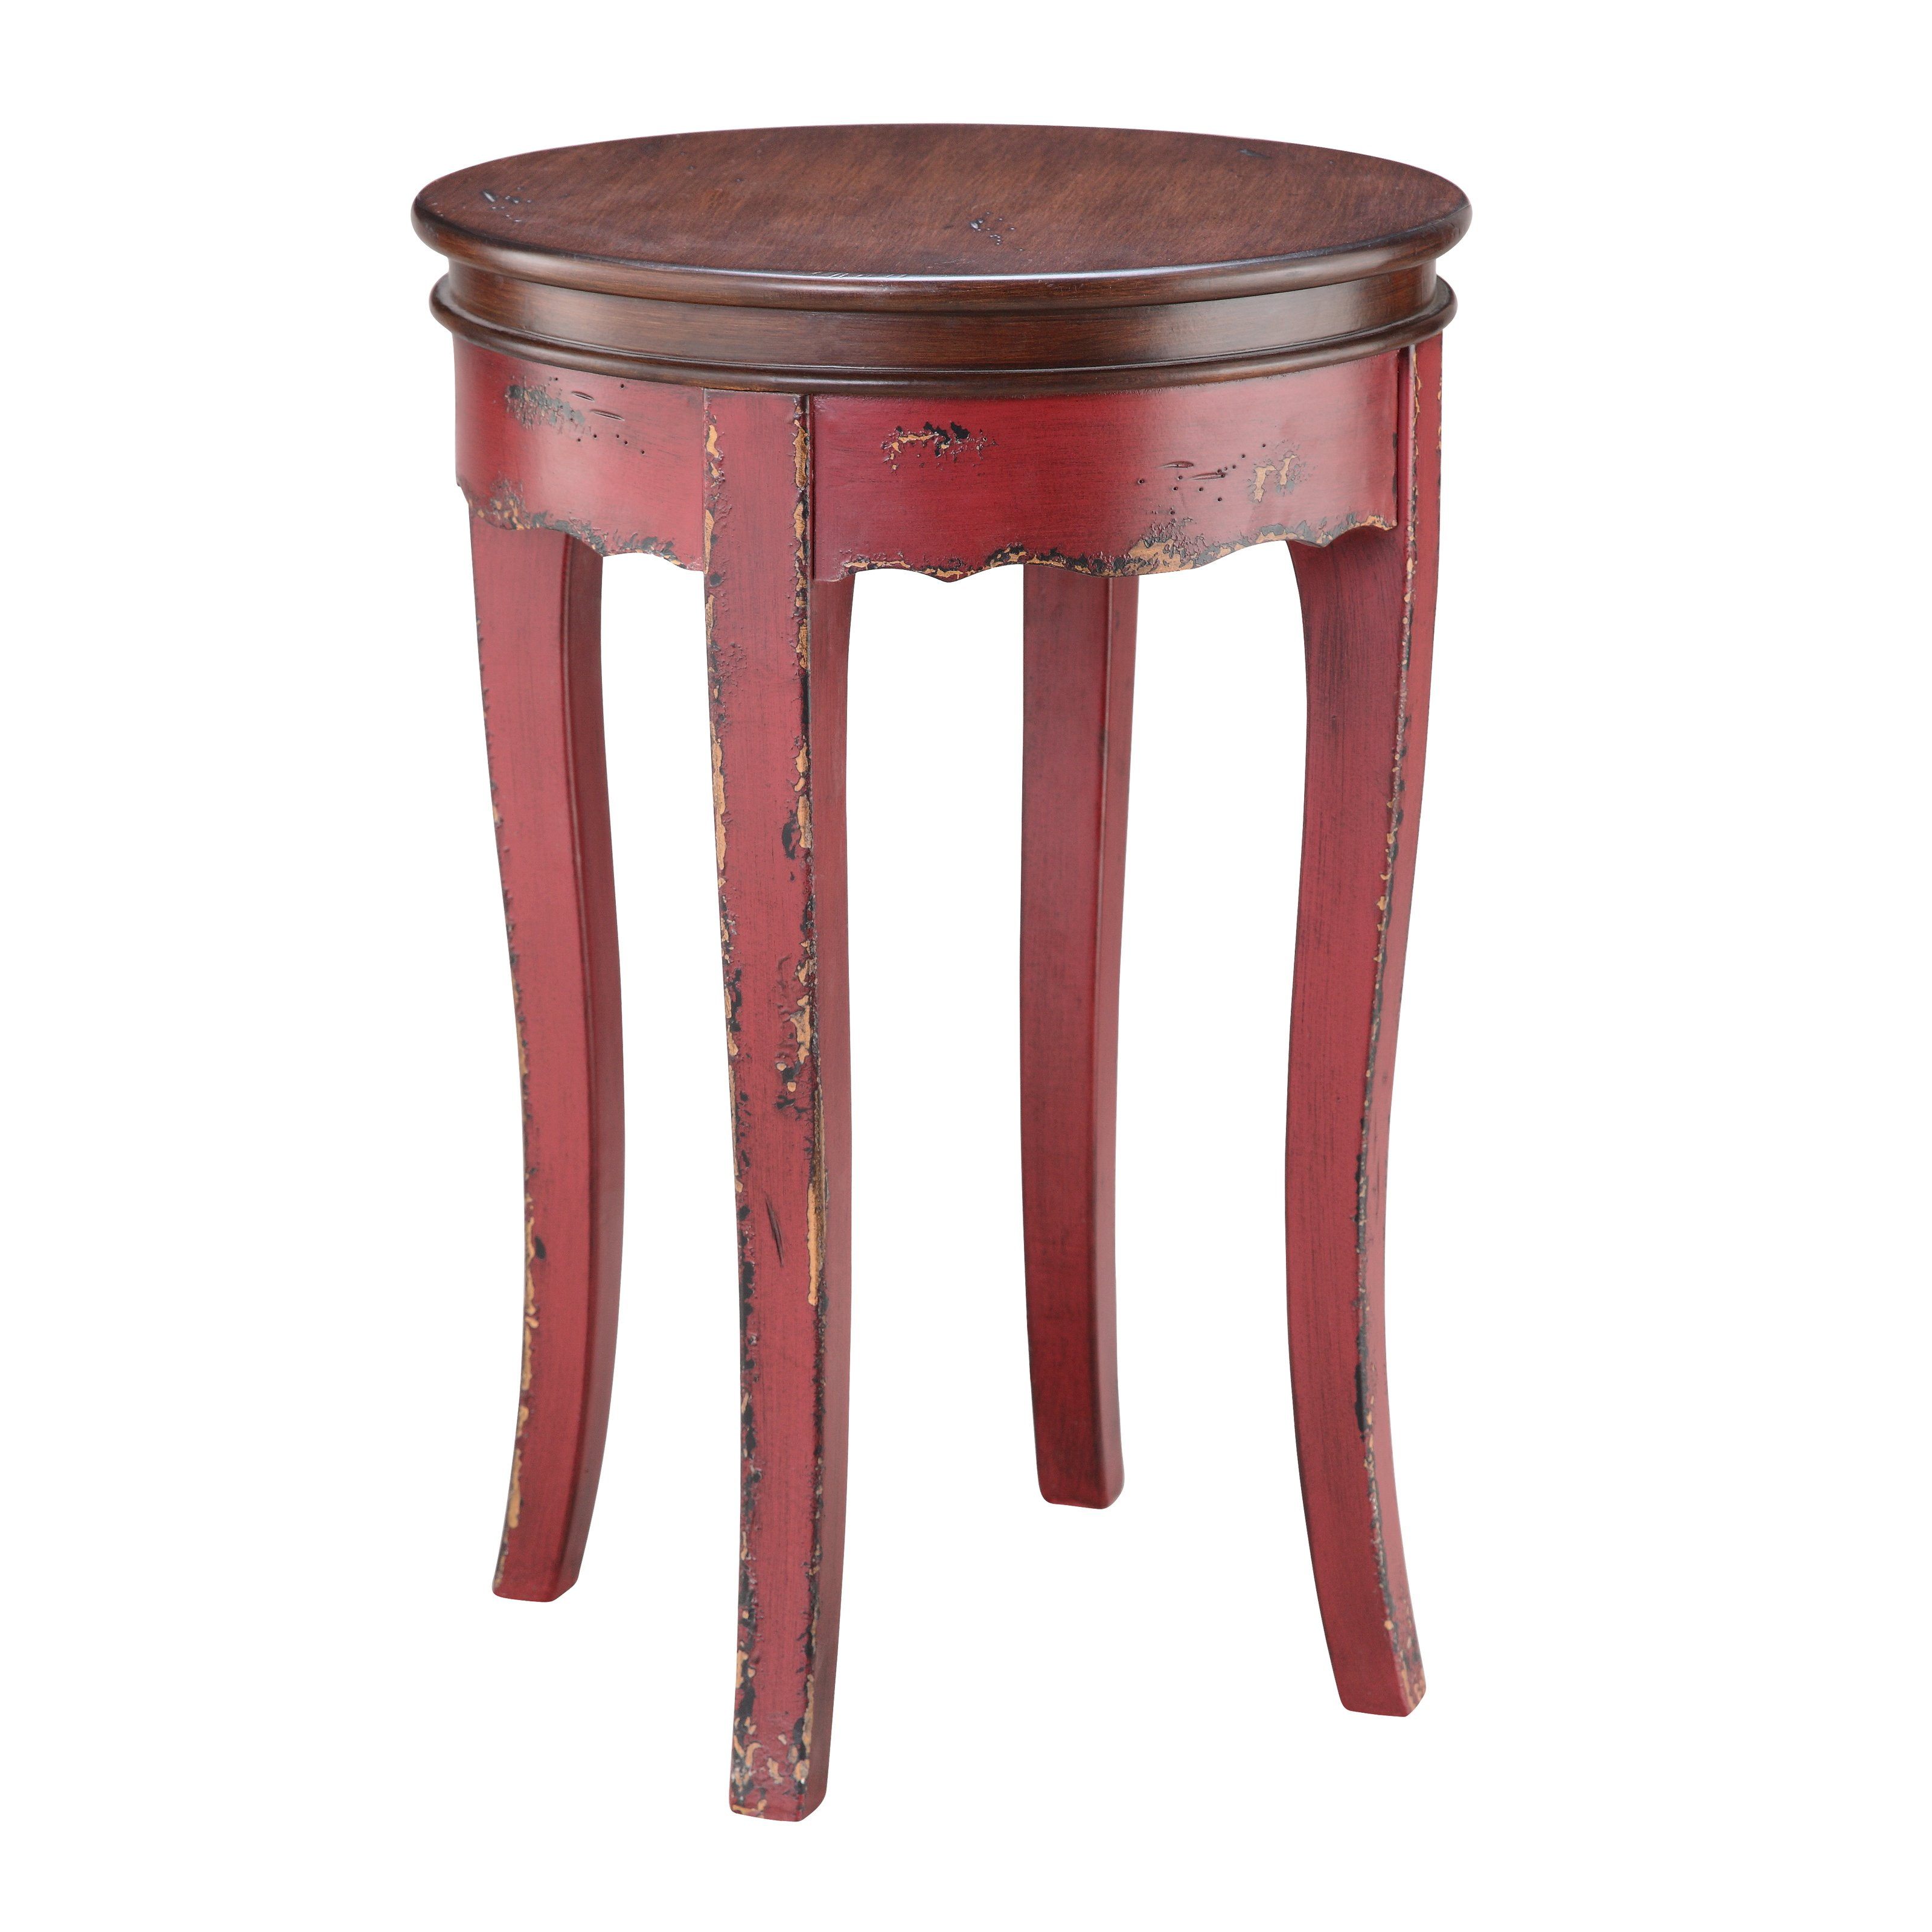 stein world glorianna red accent table oval wood tables decor outdoor side metal legs ikea bar stool contemporary living room white rectangle coffee west elm chair dark with